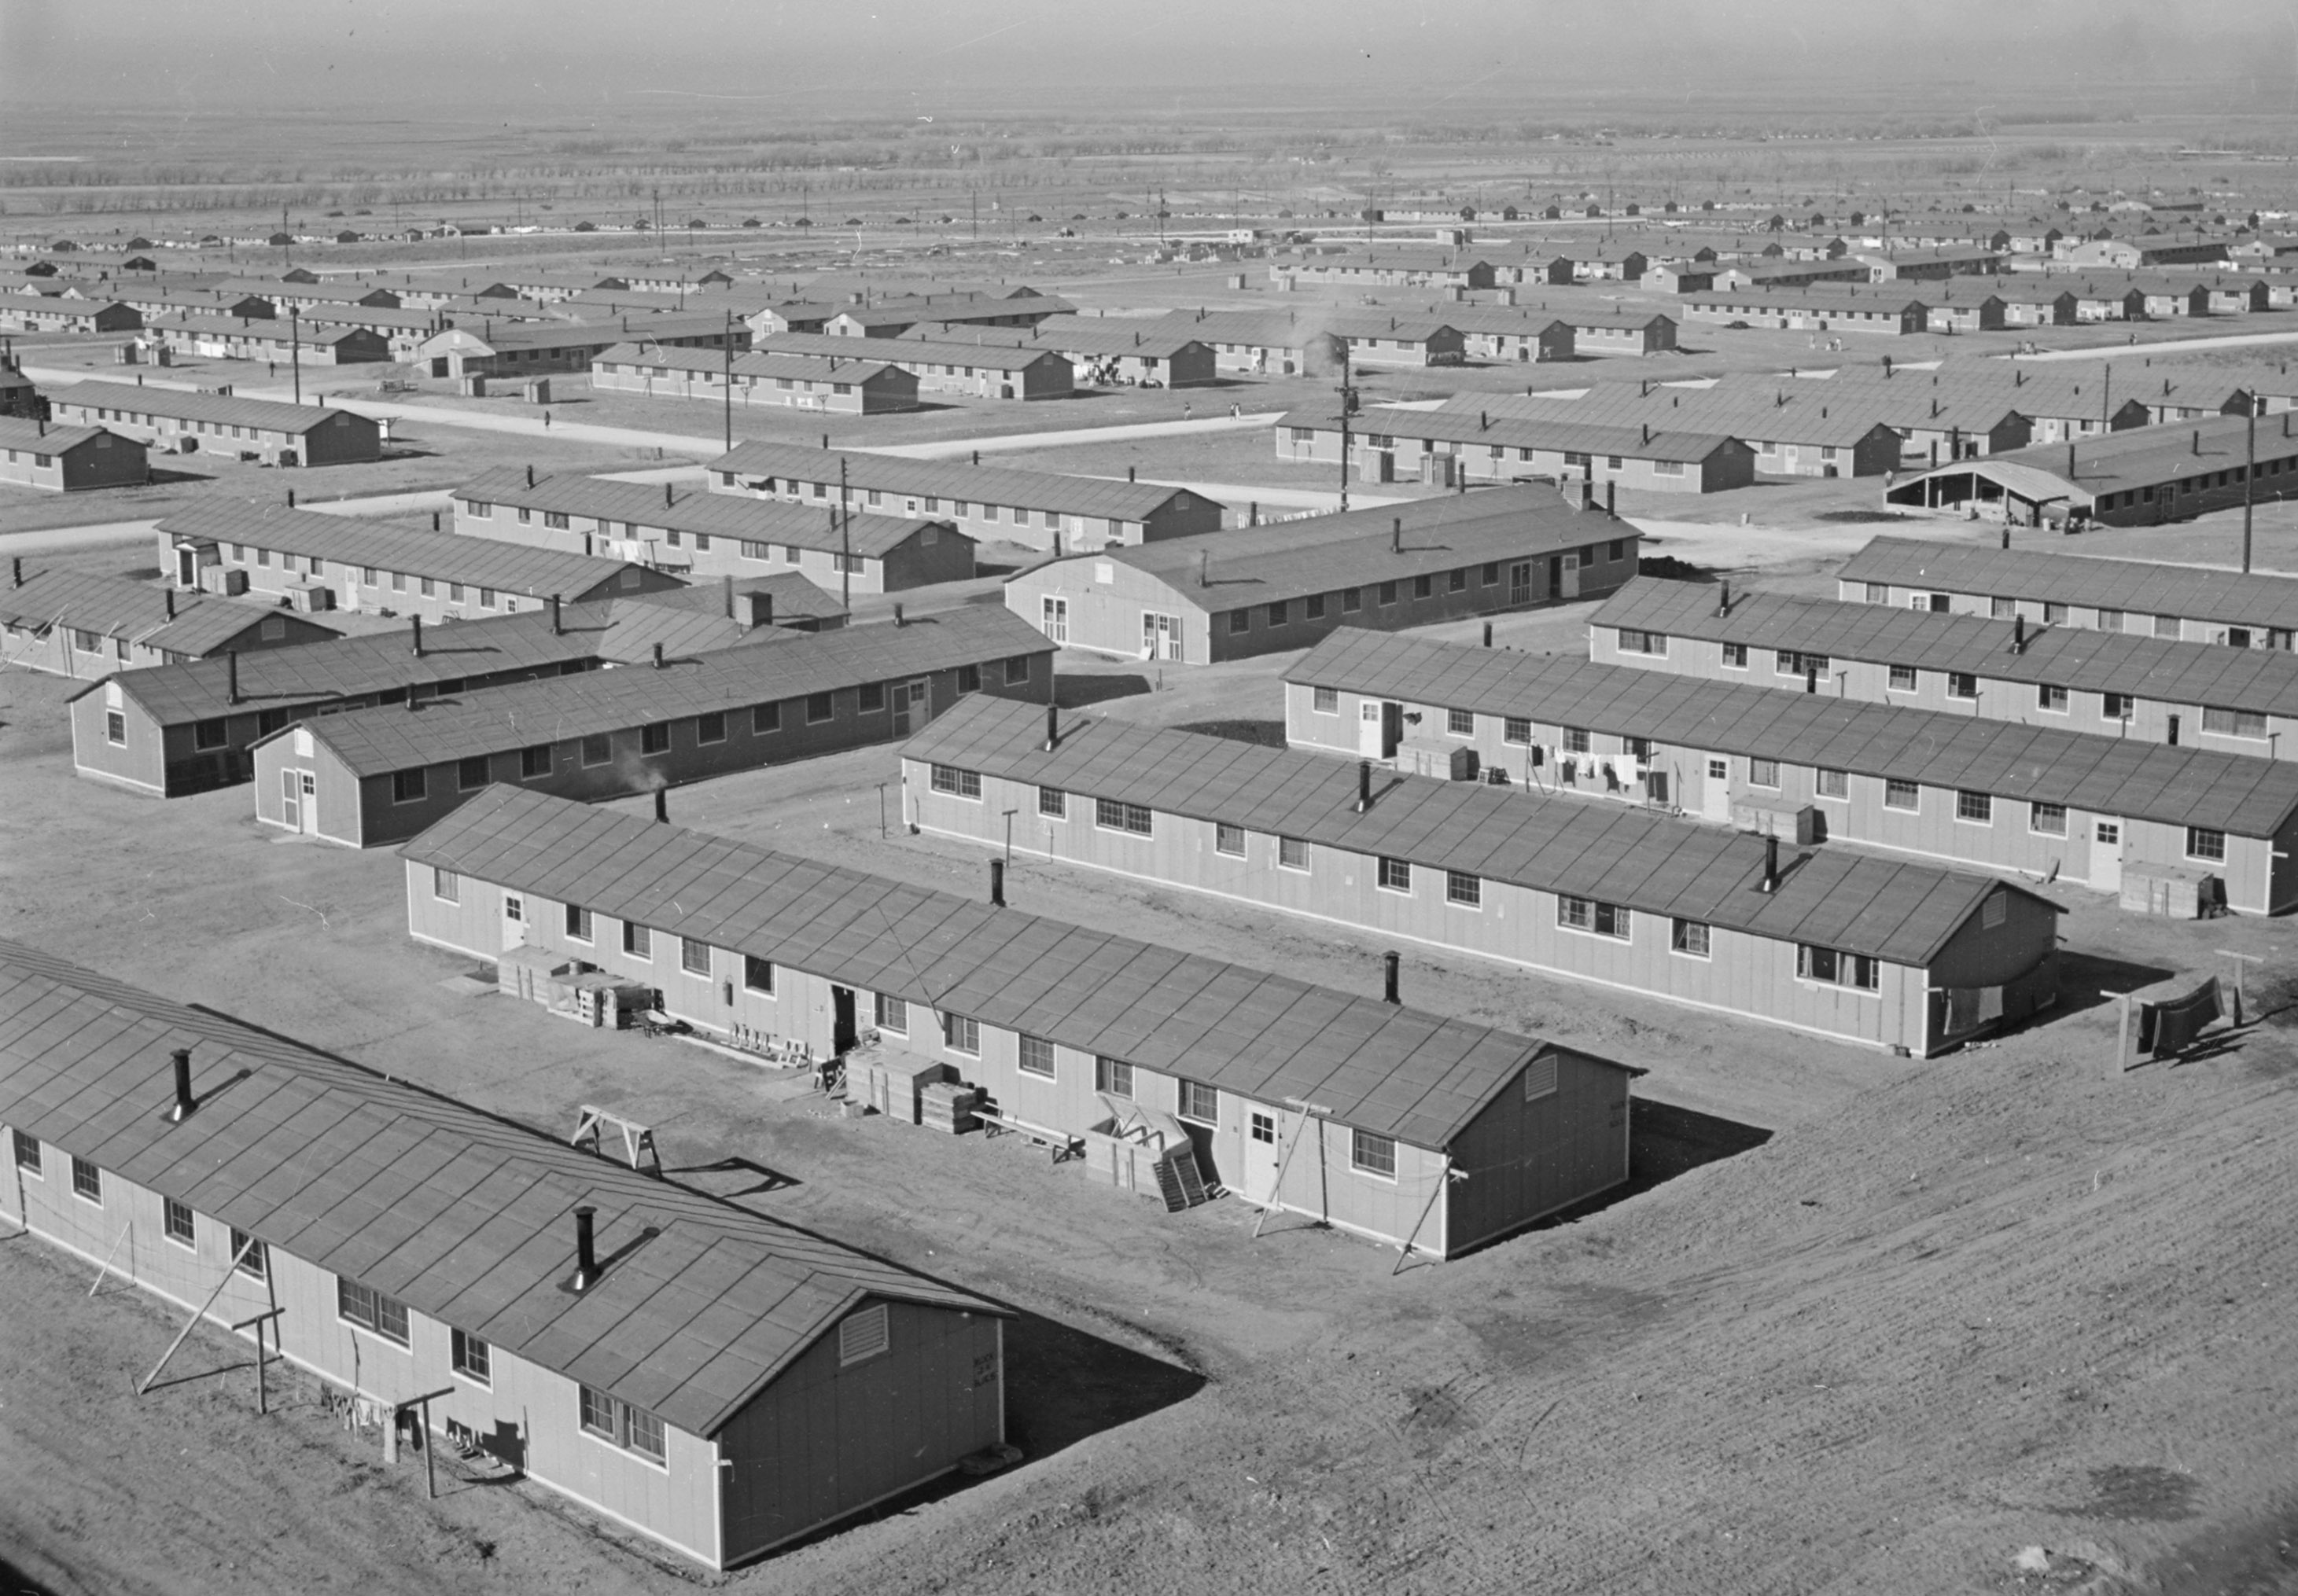 Black and white photo of rows and rows of low, bare, one-story buildings.